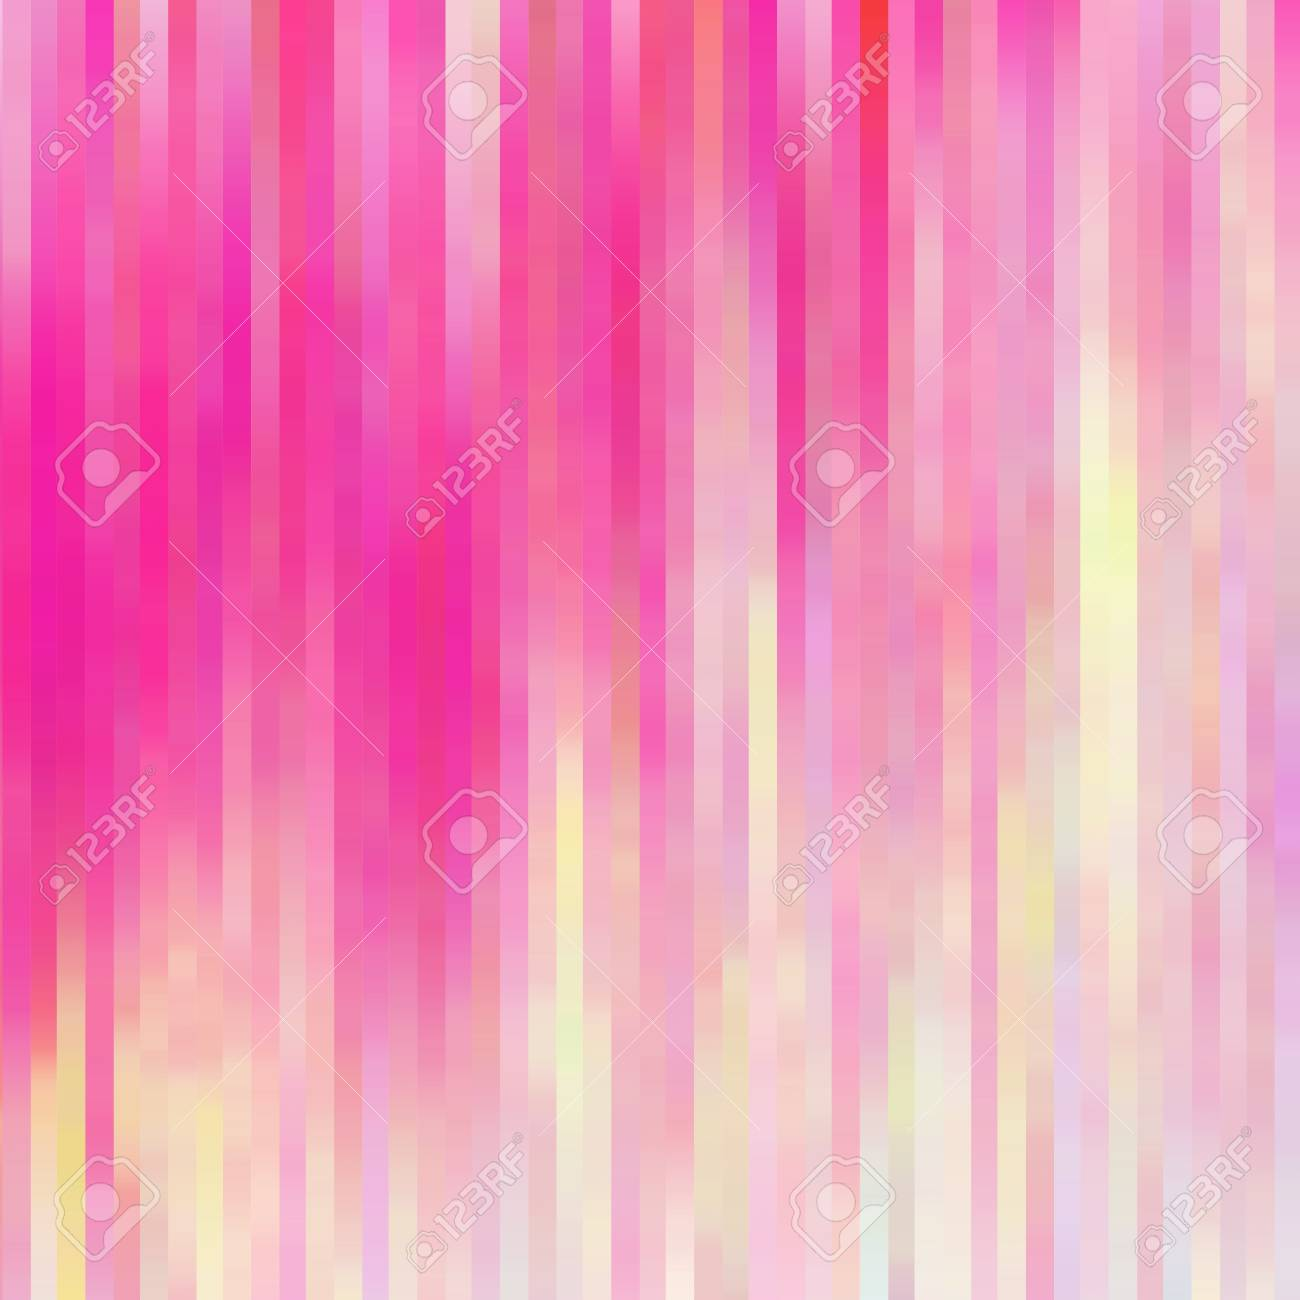 abstract lines and strips pink background stripe pink background stock photo picture and royalty free image image 104875138 123rf com